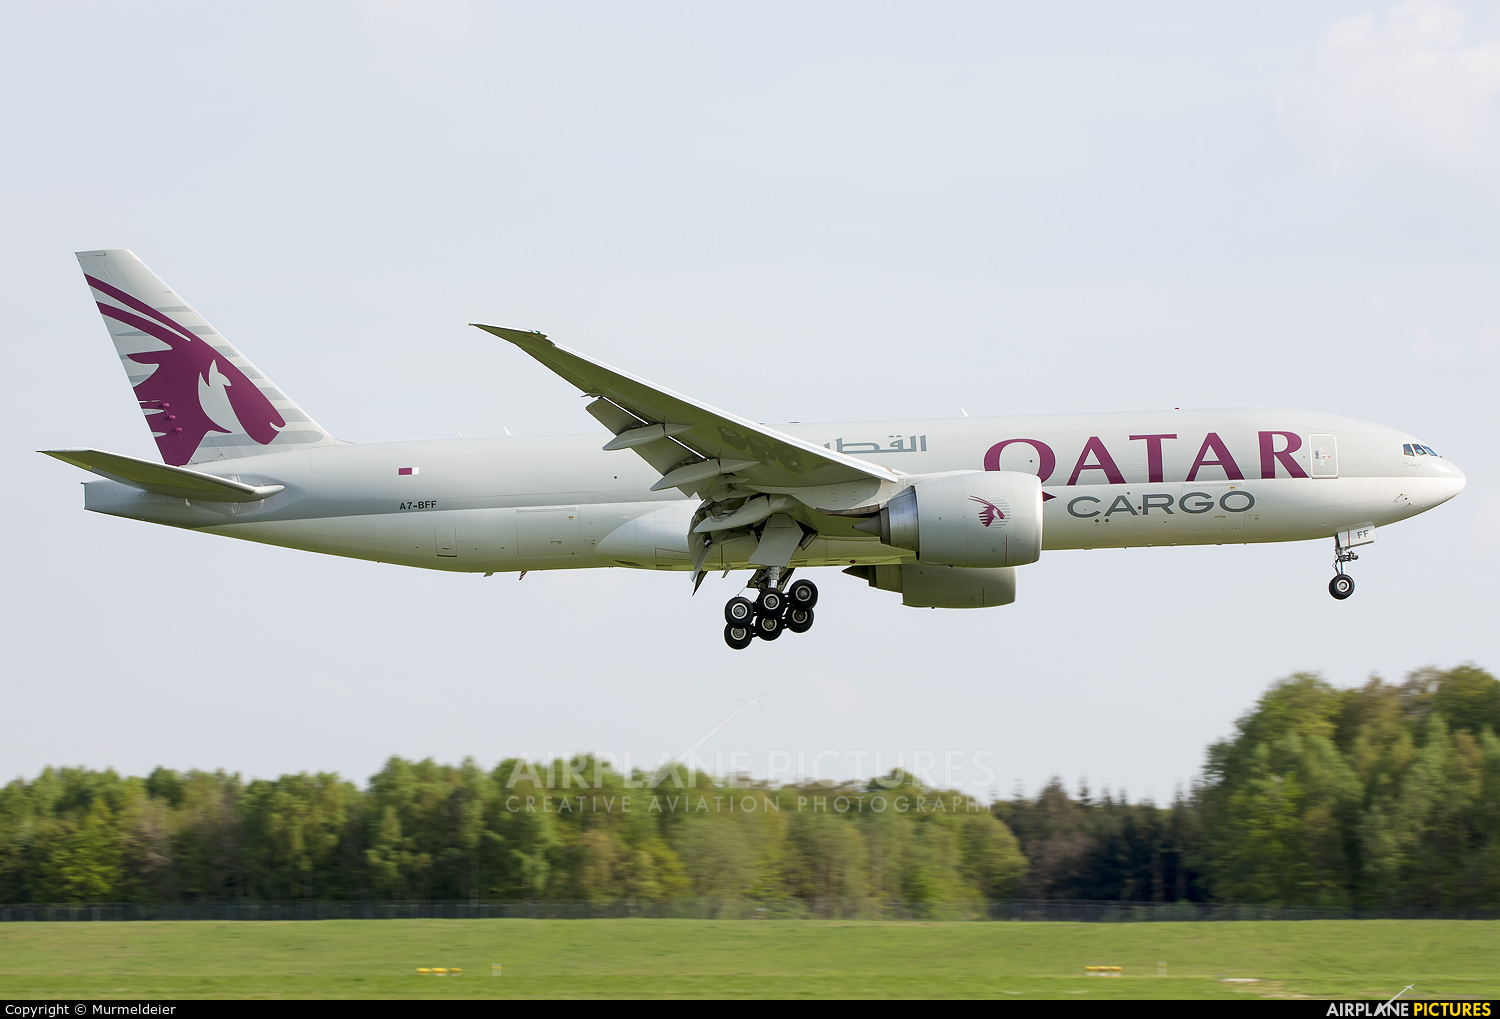 Qatar Airways Cargo A7-BFF aircraft at Luxembourg - Findel